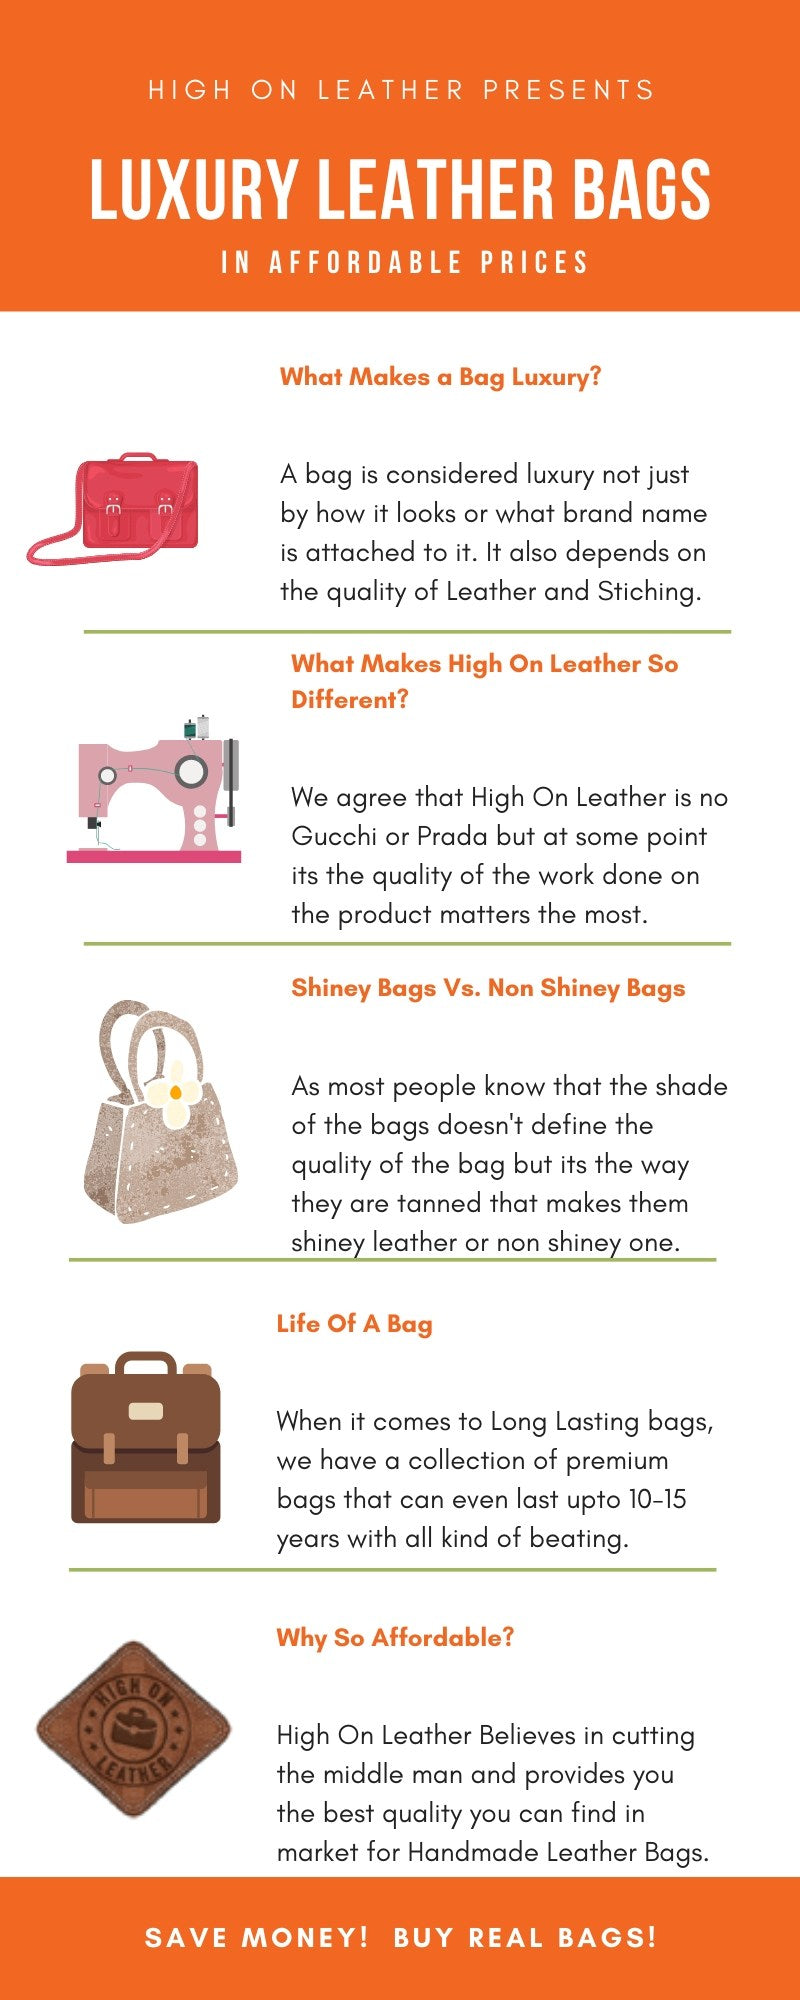 Leather Bags in Cheap Prices